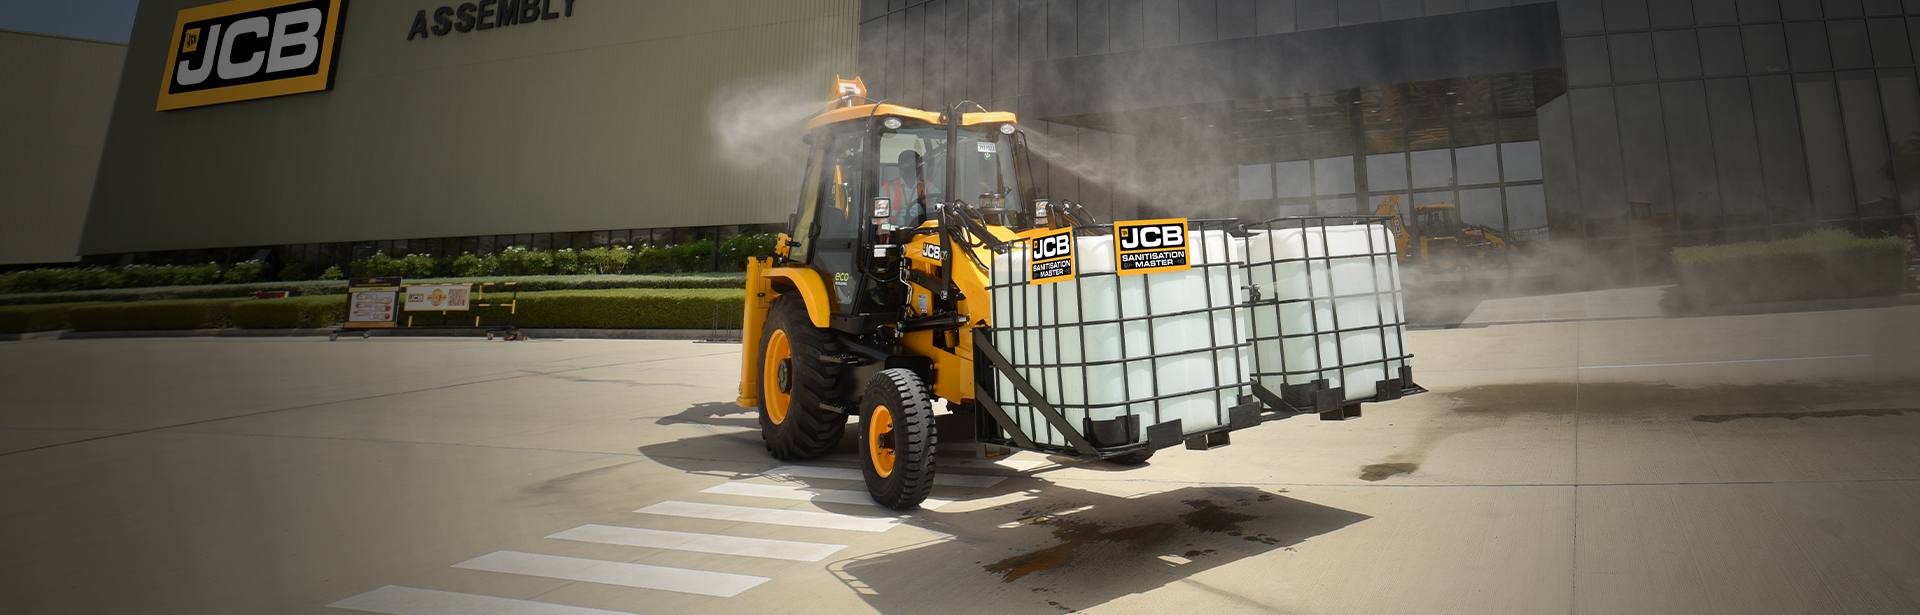 JCB SANITISATION MASTER Dhanbad Tradewings Earthmovers JCB